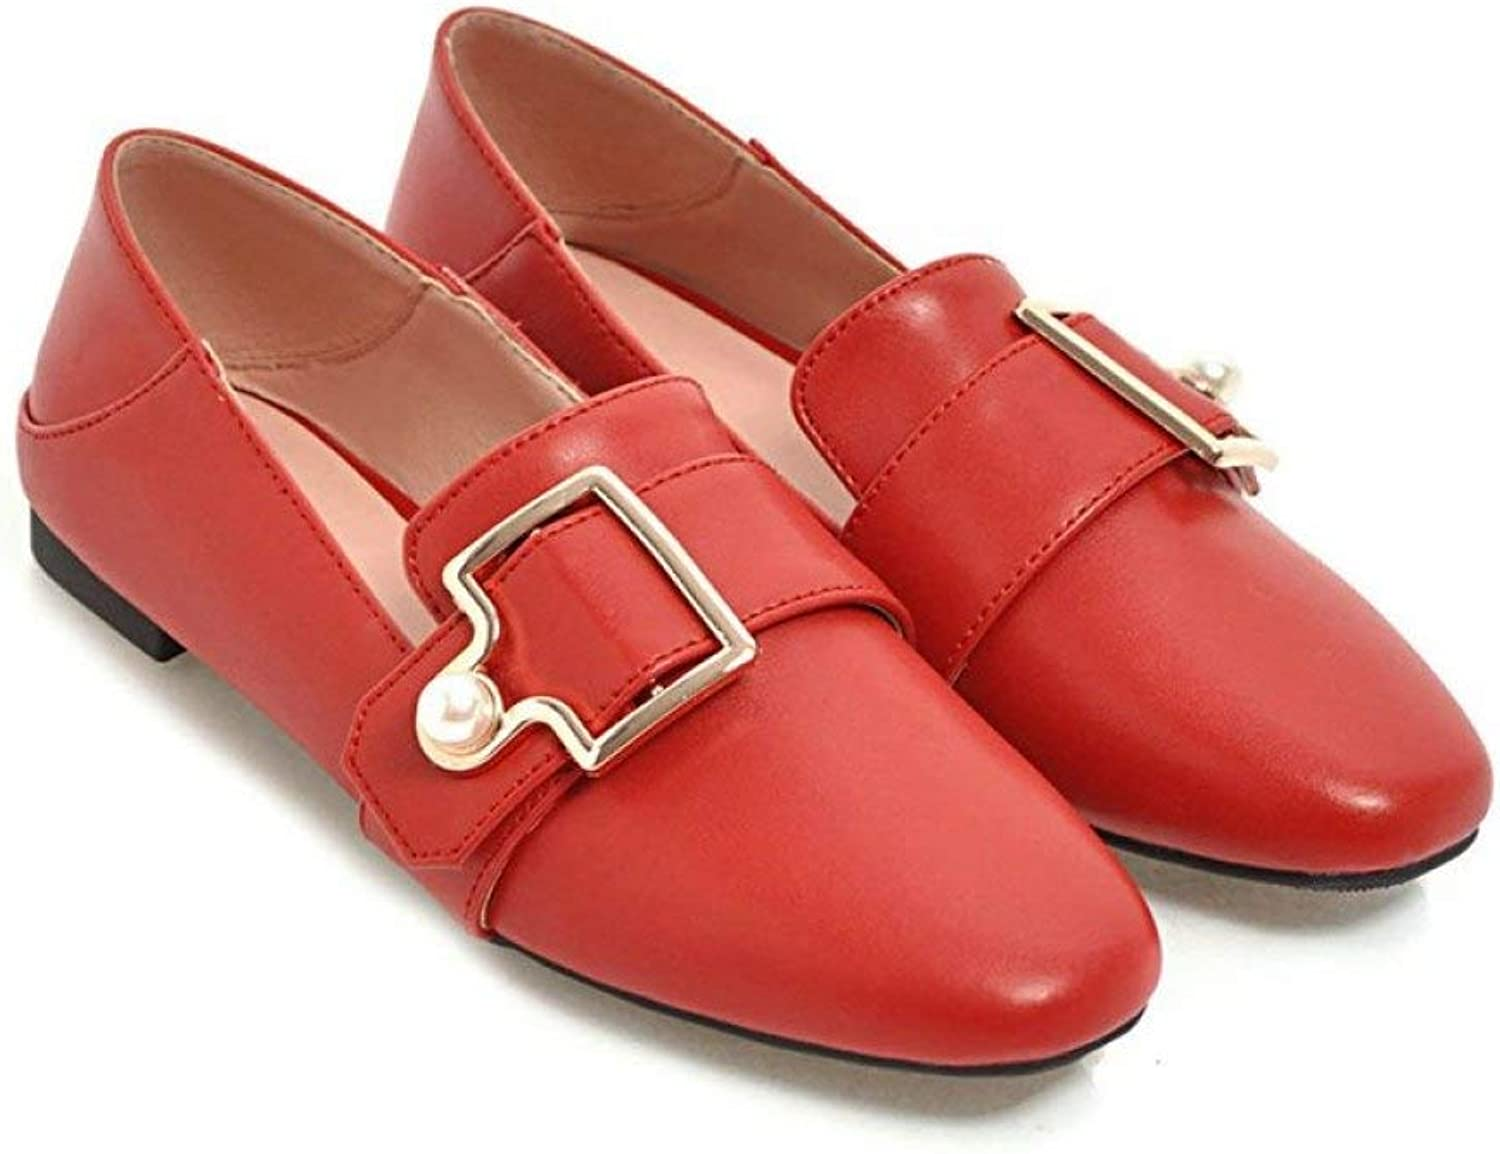 Fay Waters Women's Pearl Buckle Mule Flats Square Toe Slip On Leather Comfort Slipper Loafer shoes